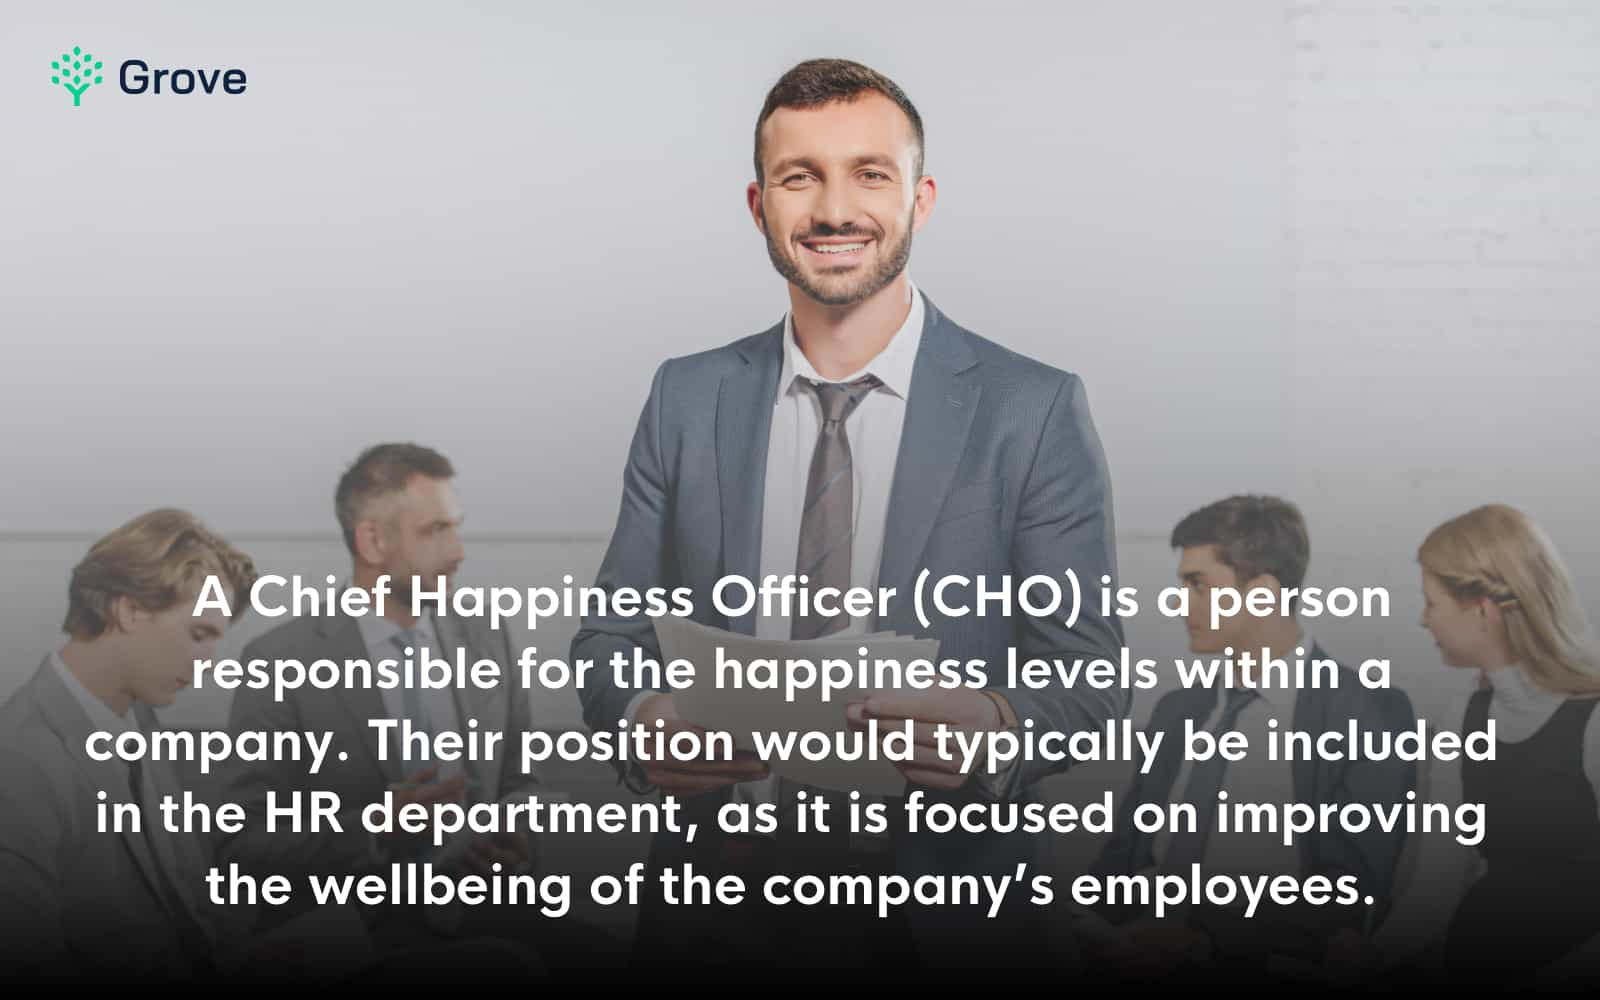 Grove HR - Chief Happines Officer definition